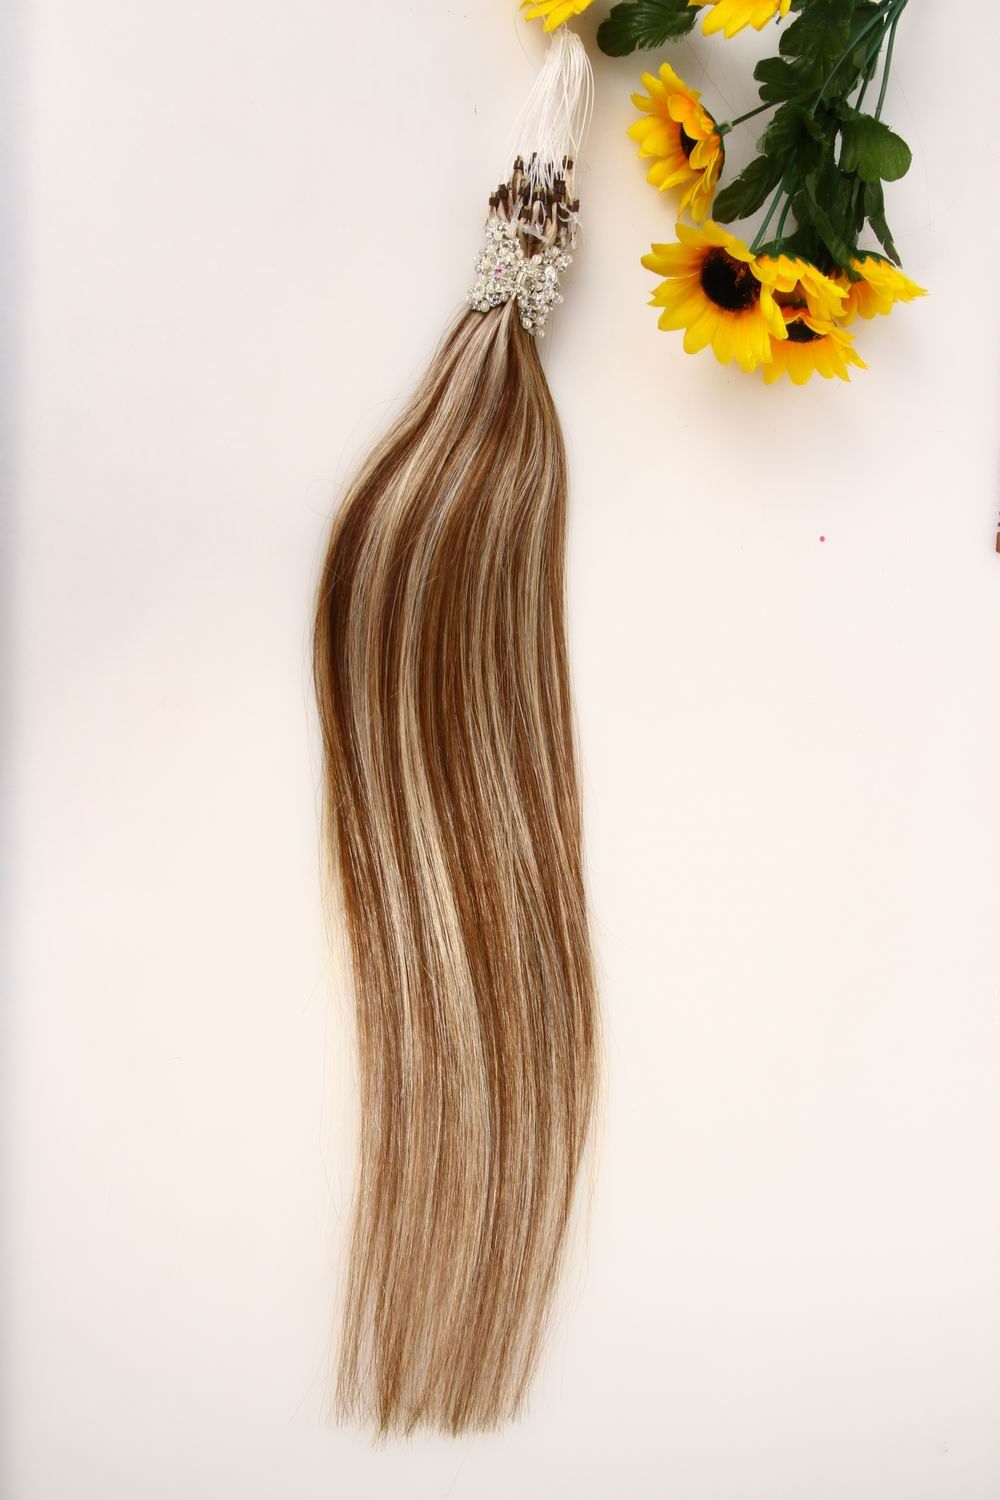 Find More Human Hair Extensions Information About 20 Virgin